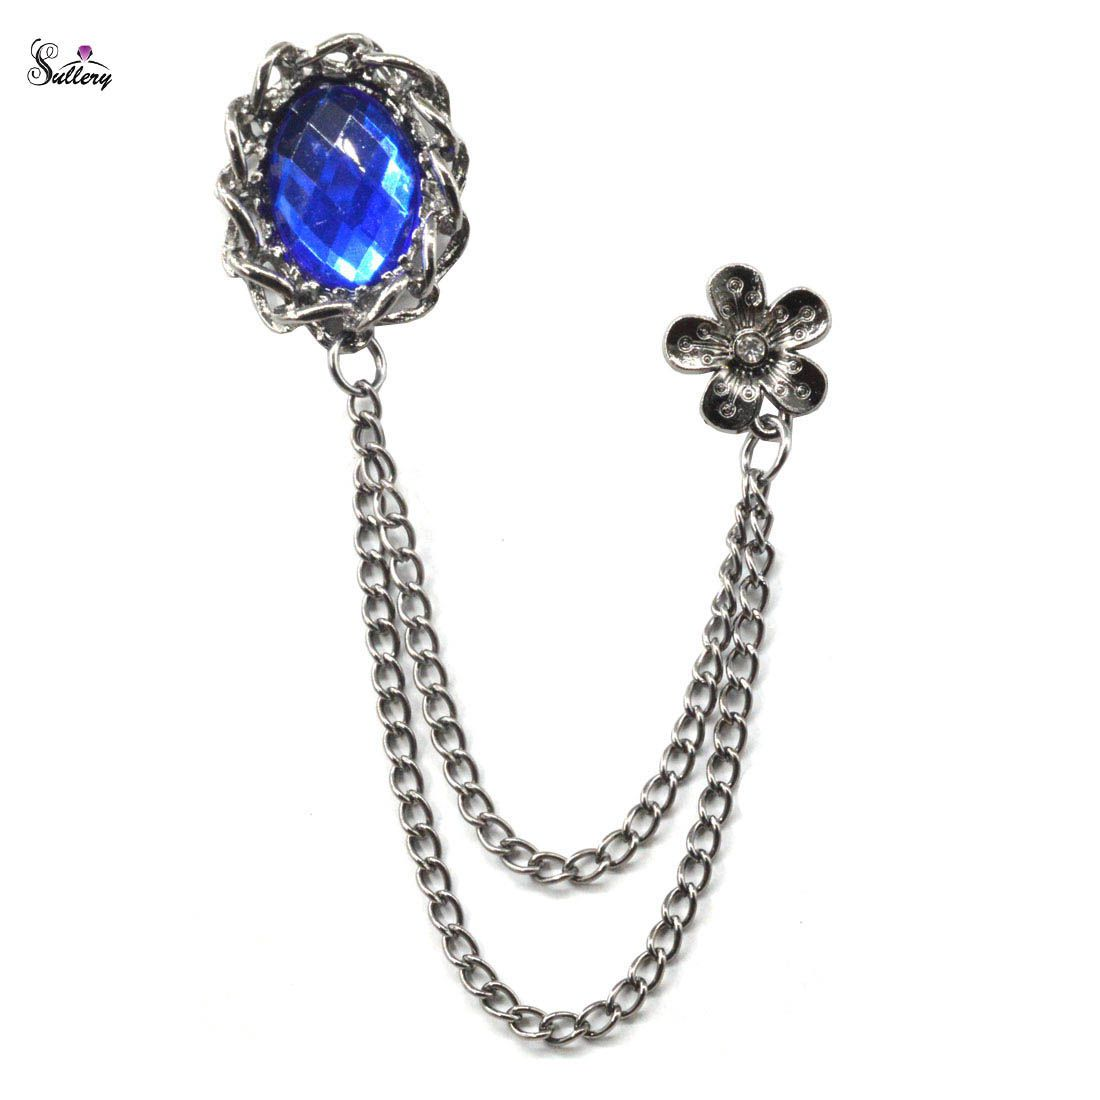 Sullery Fashionable Blue Round  Prism Rhinestone Crystal Flower Brooch Crystal Prism Brooch For Men